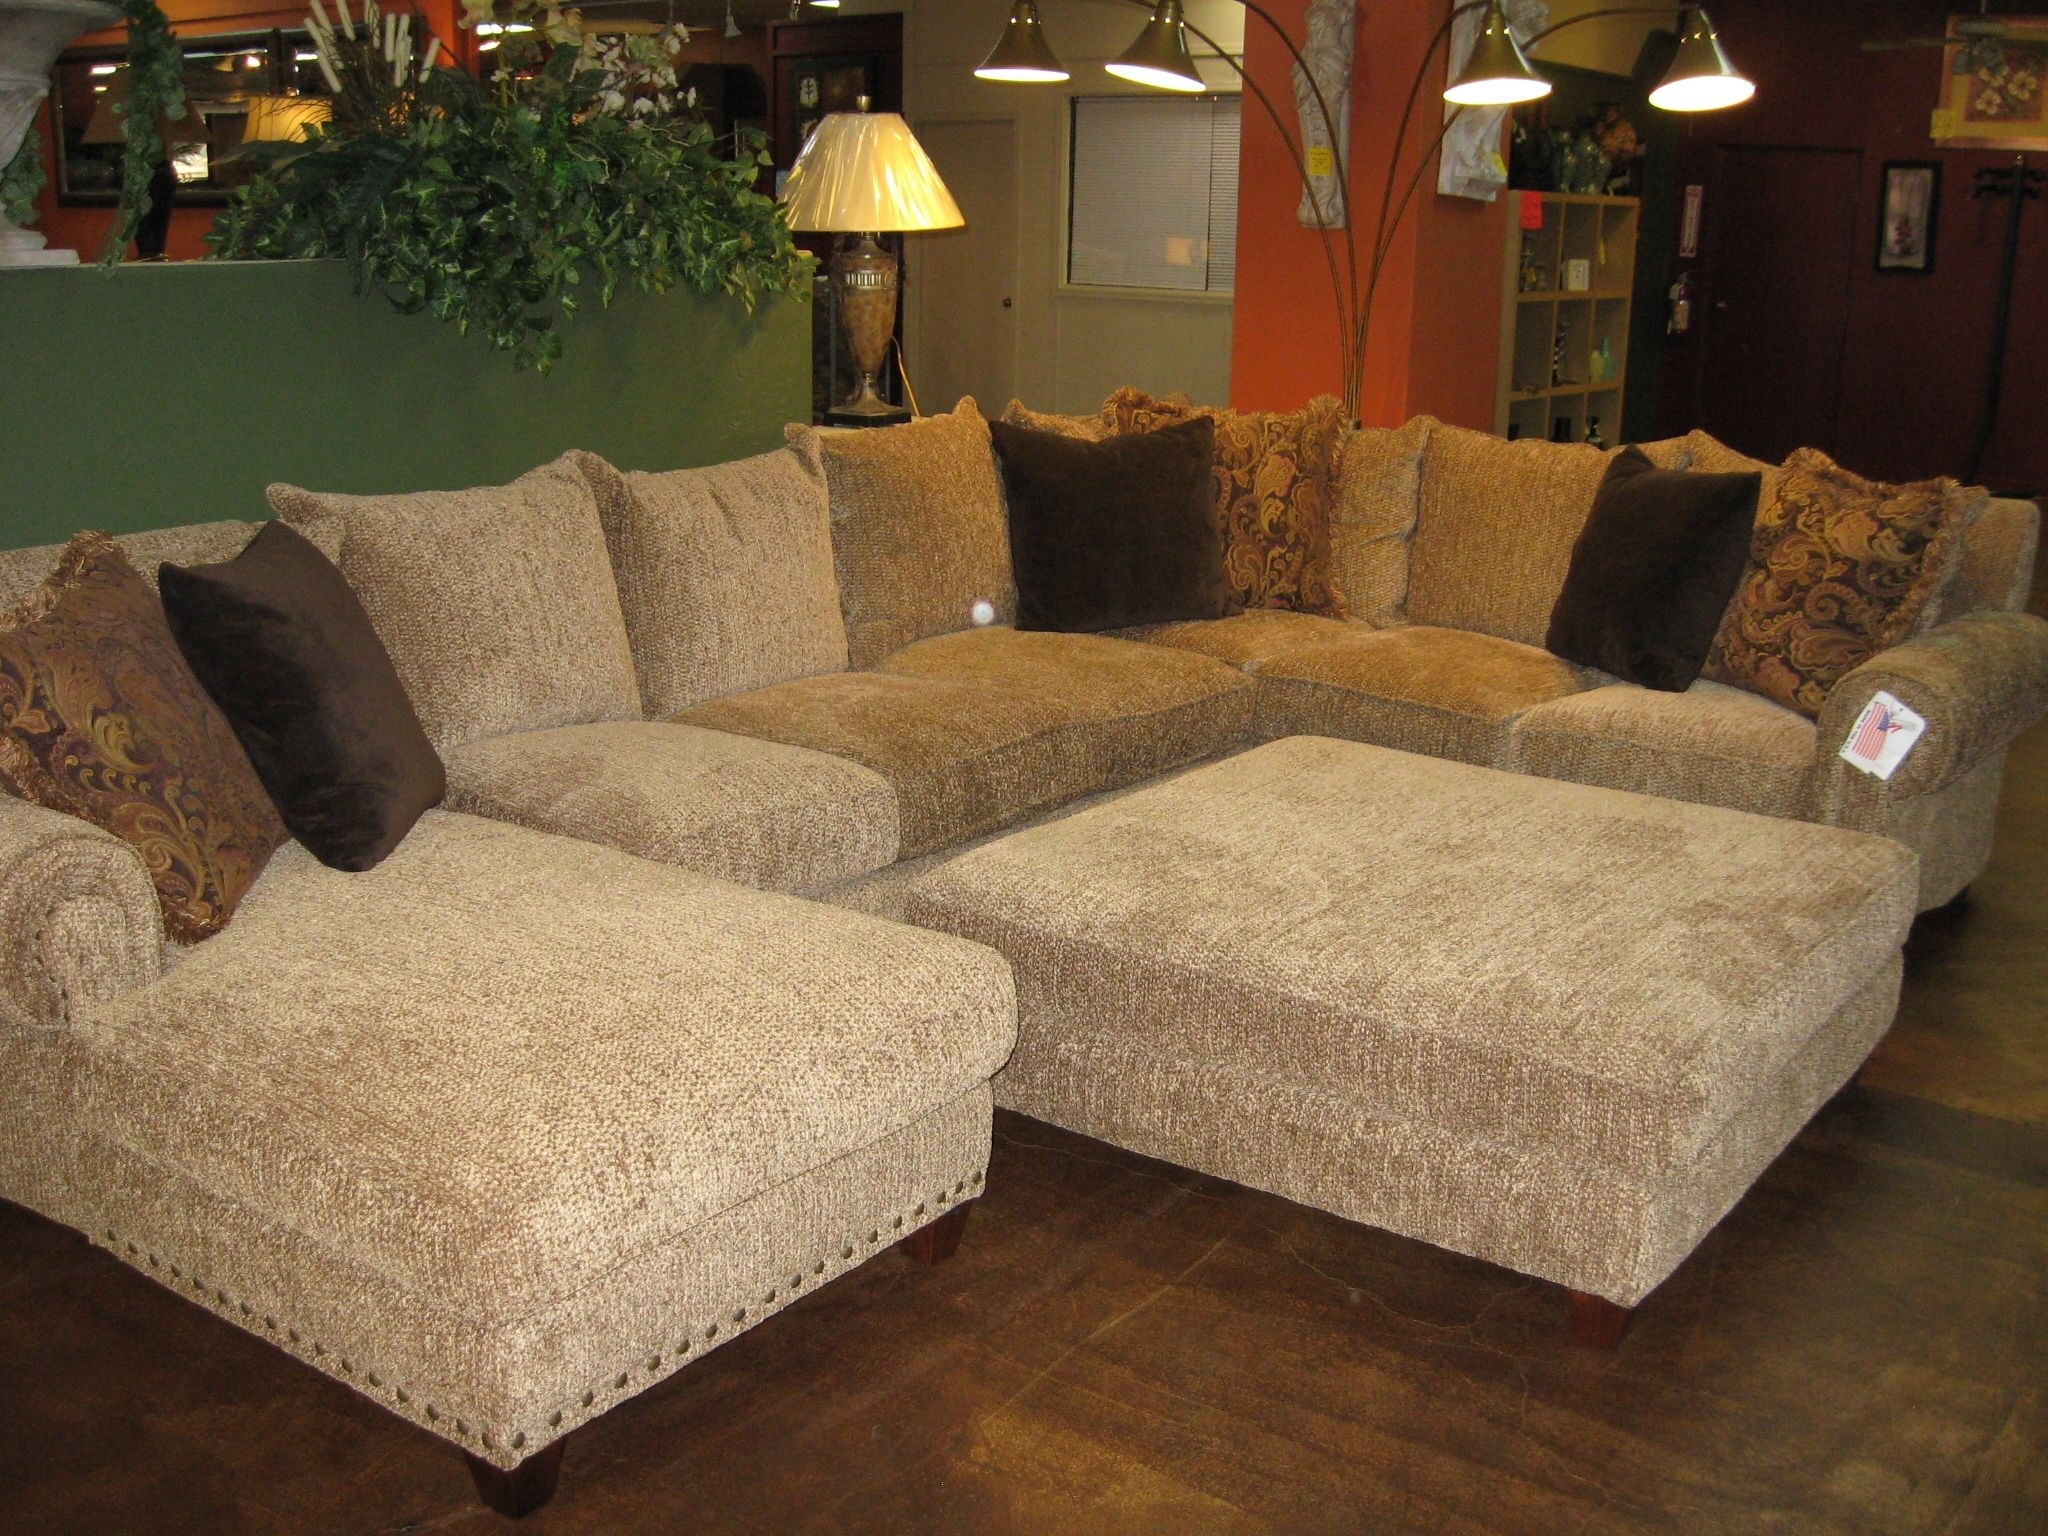 Robert Michael Rocky Mountain Sectional | Rocky Mountain In Mammoth Inside Sectionals With Oversized Ottoman (View 9 of 15)